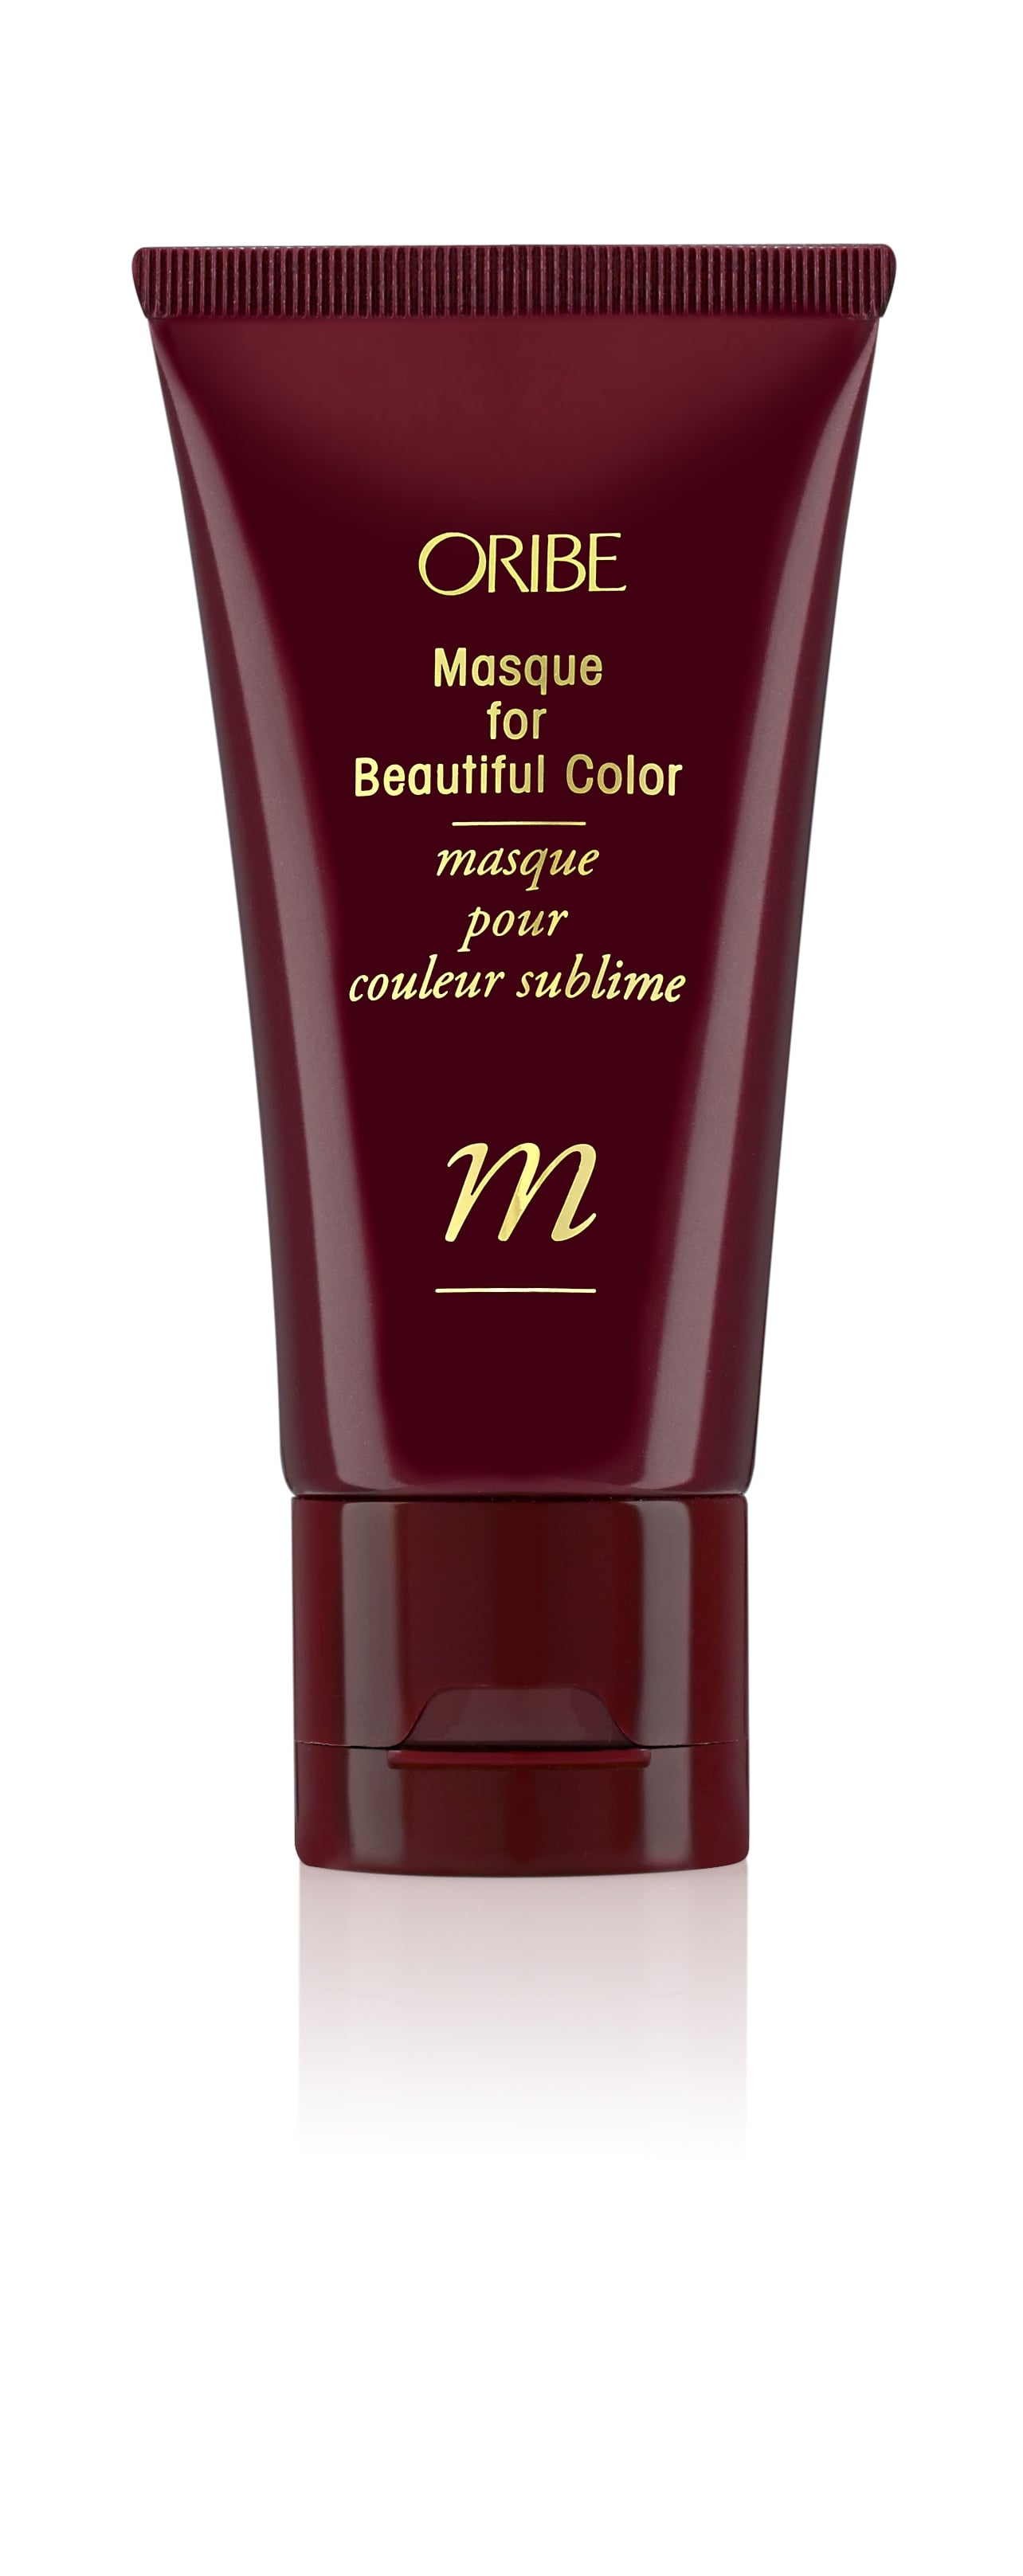 Oribe Travel Masque For Beautiful Color